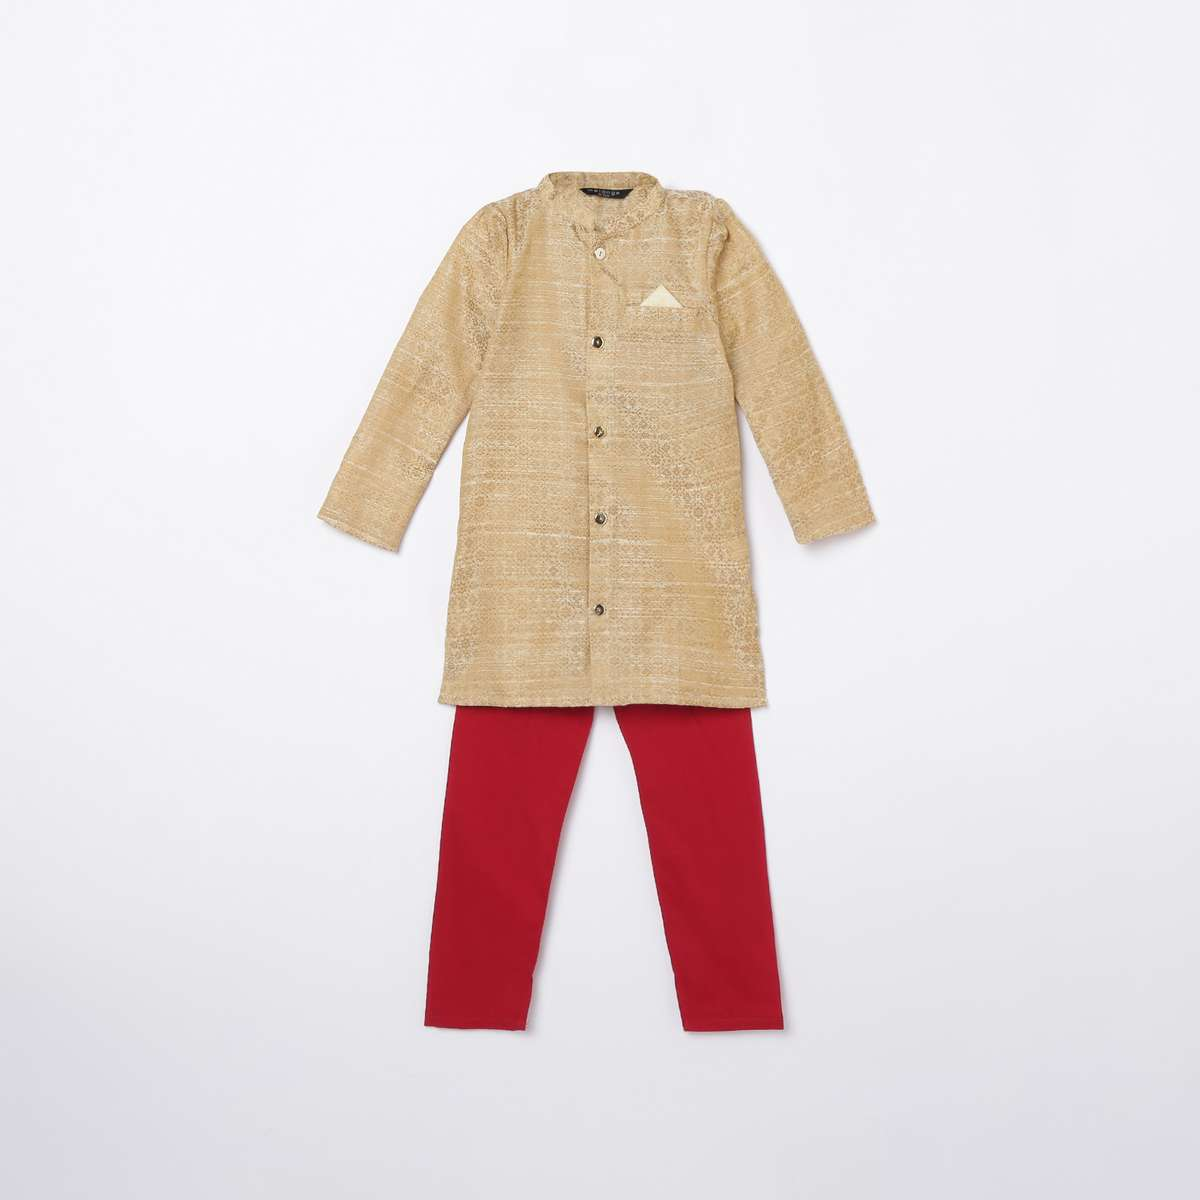 2-MELANGE Boys Embroidered Kurta with Solid Elasticated Pyjamas